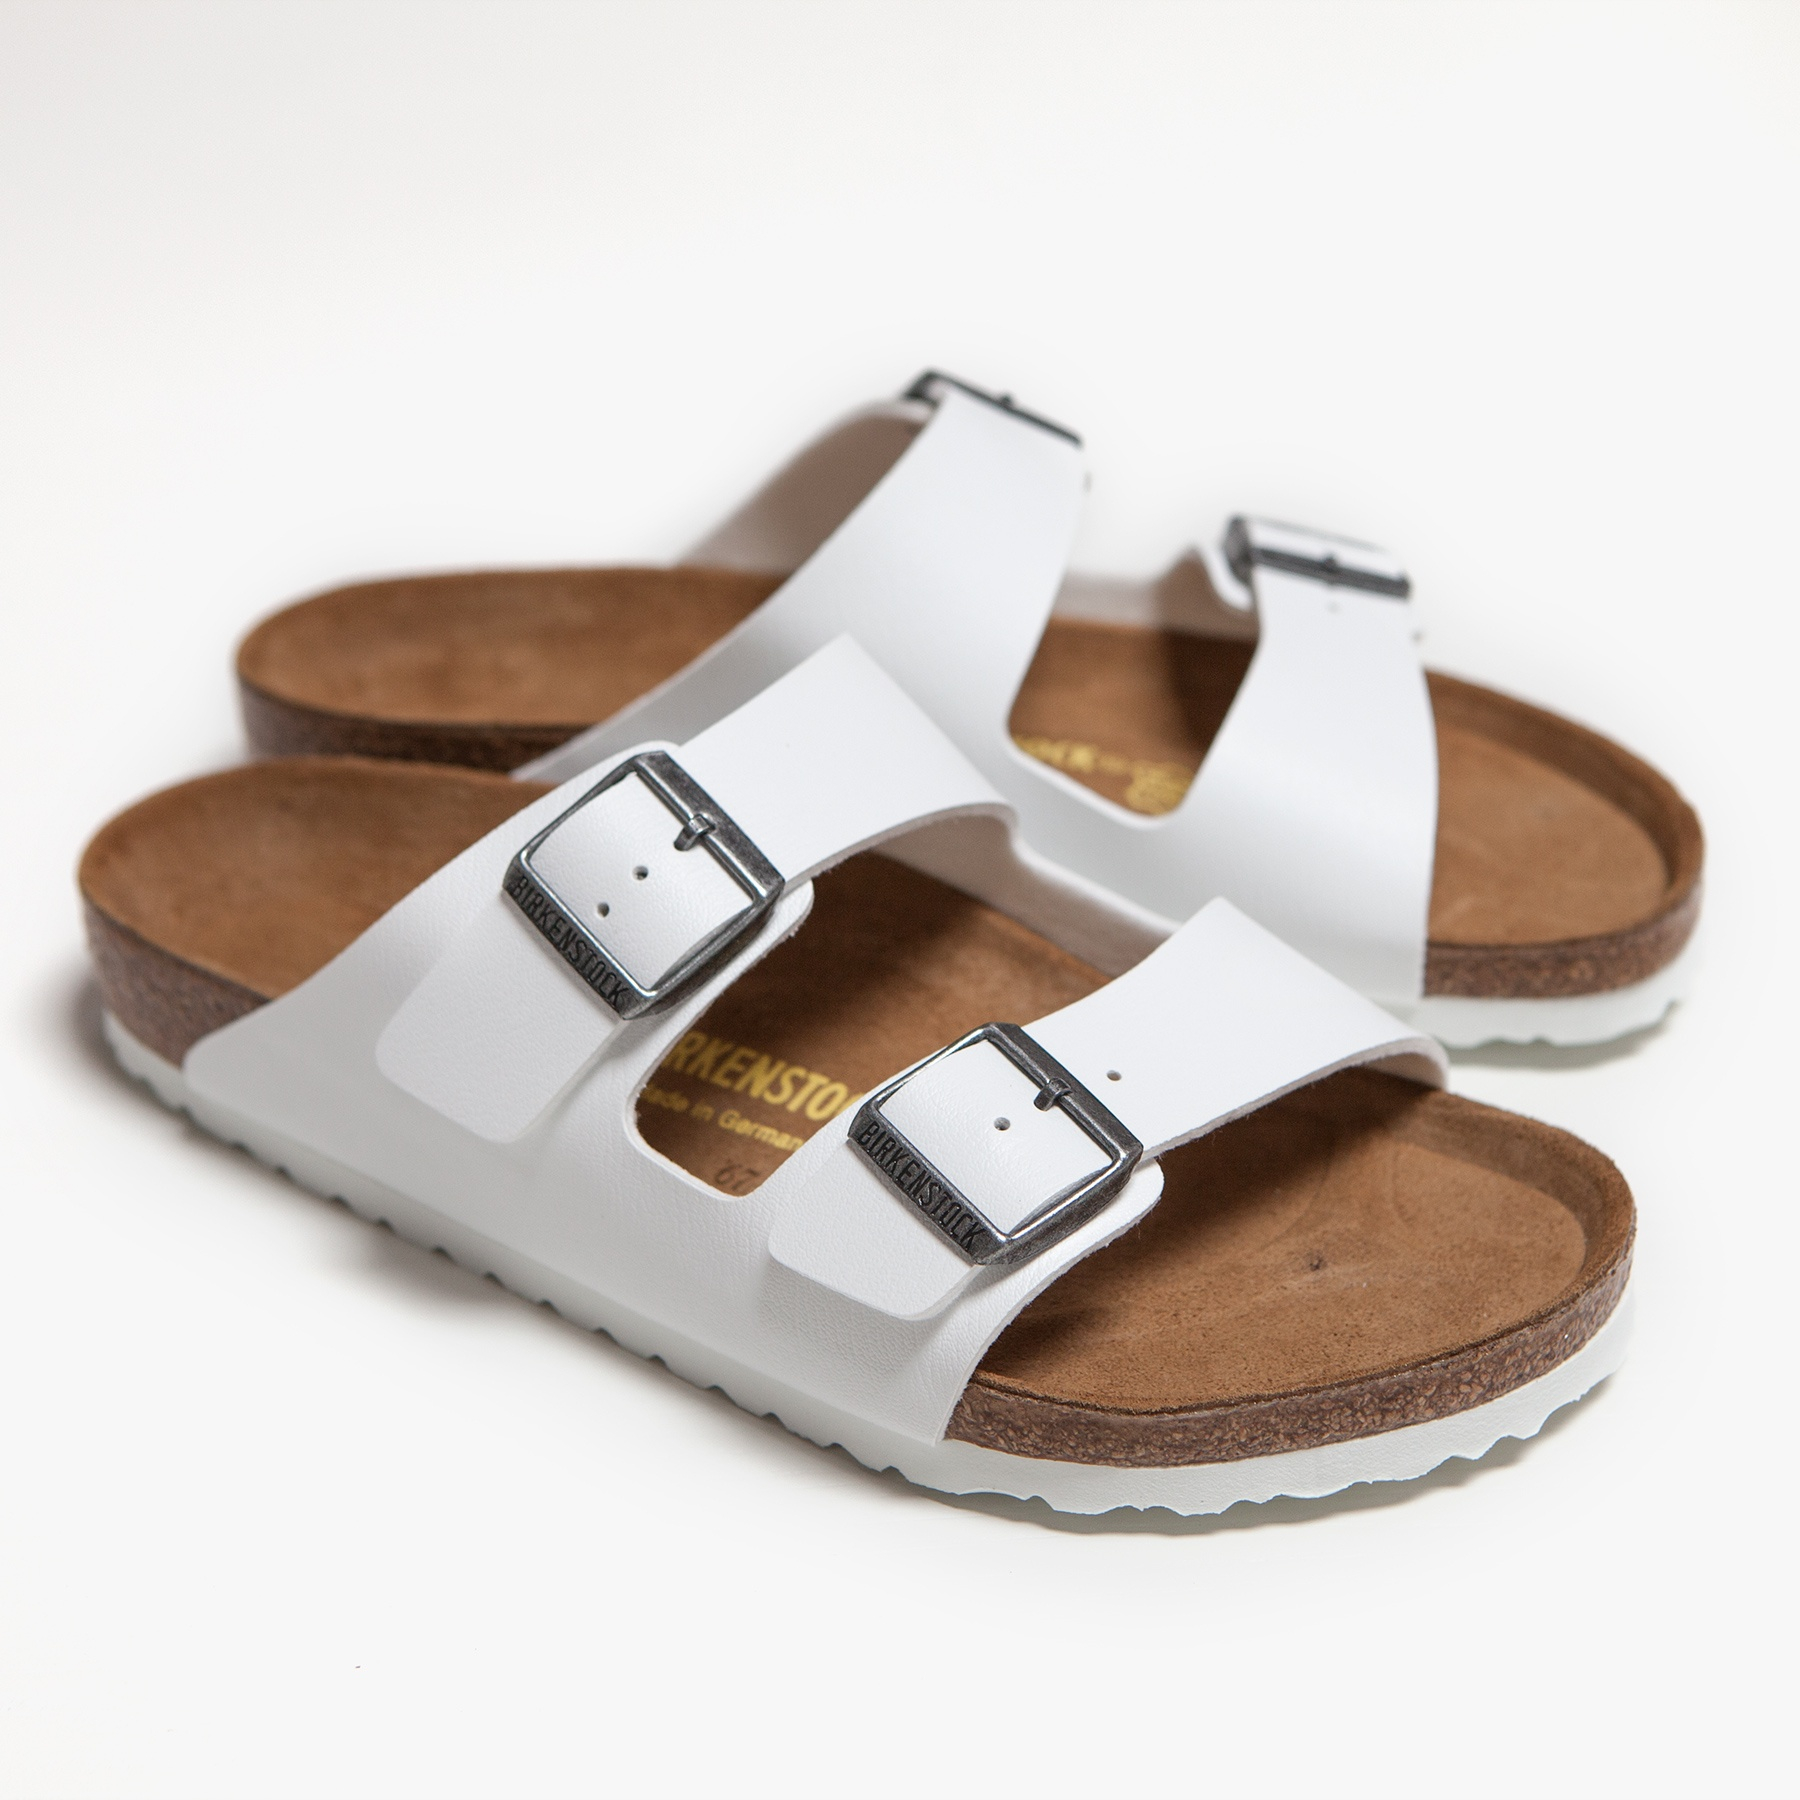 46b1dae961 Lyst - James Perse Birkenstock Arizona Sandal - Womens in White